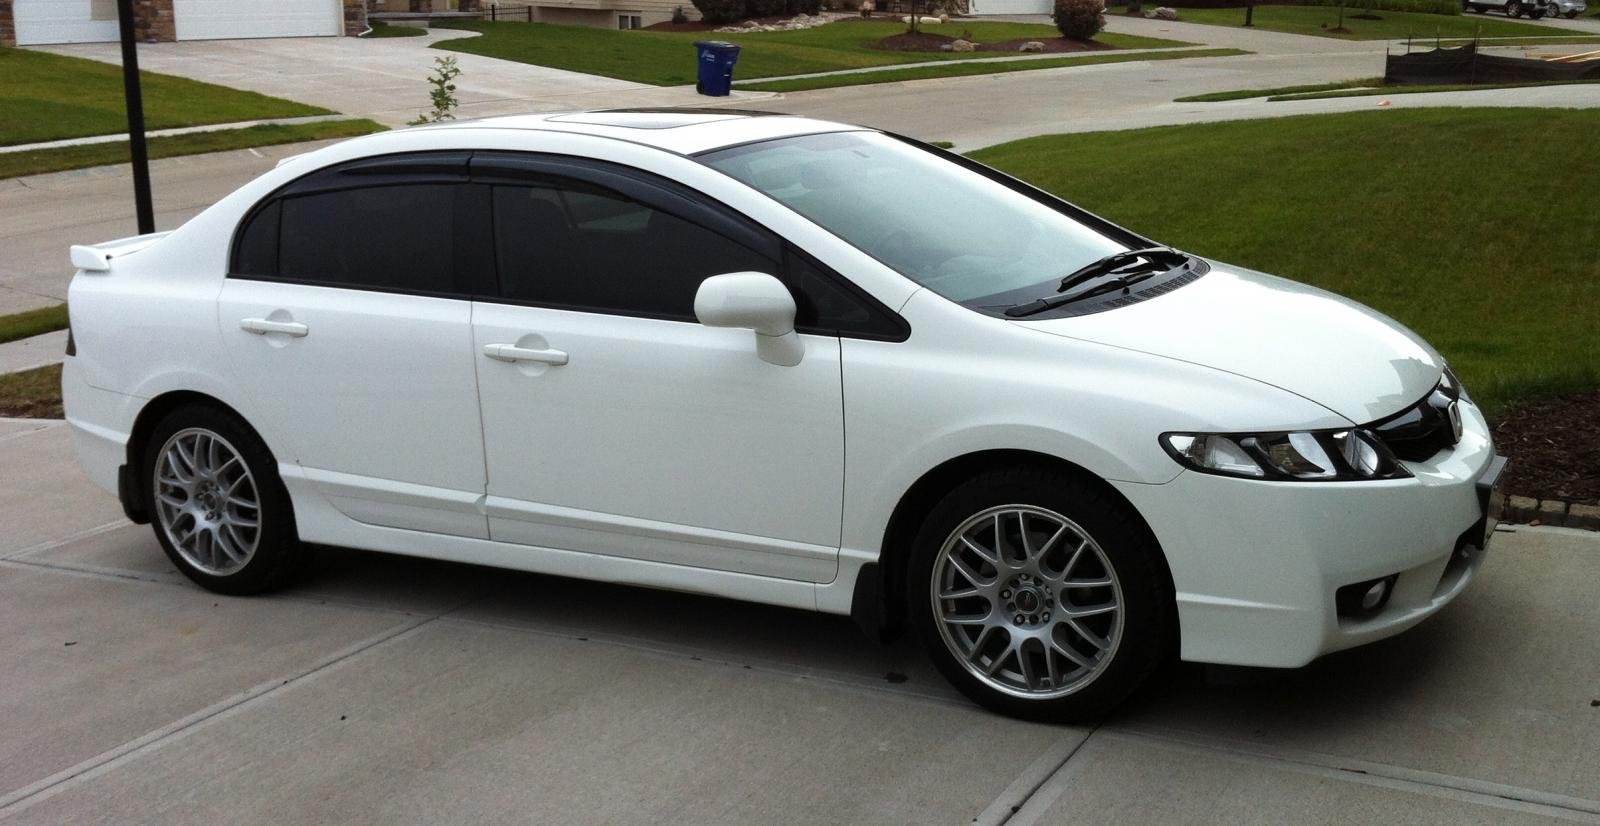 TINT Help 20 Or 35 All Around